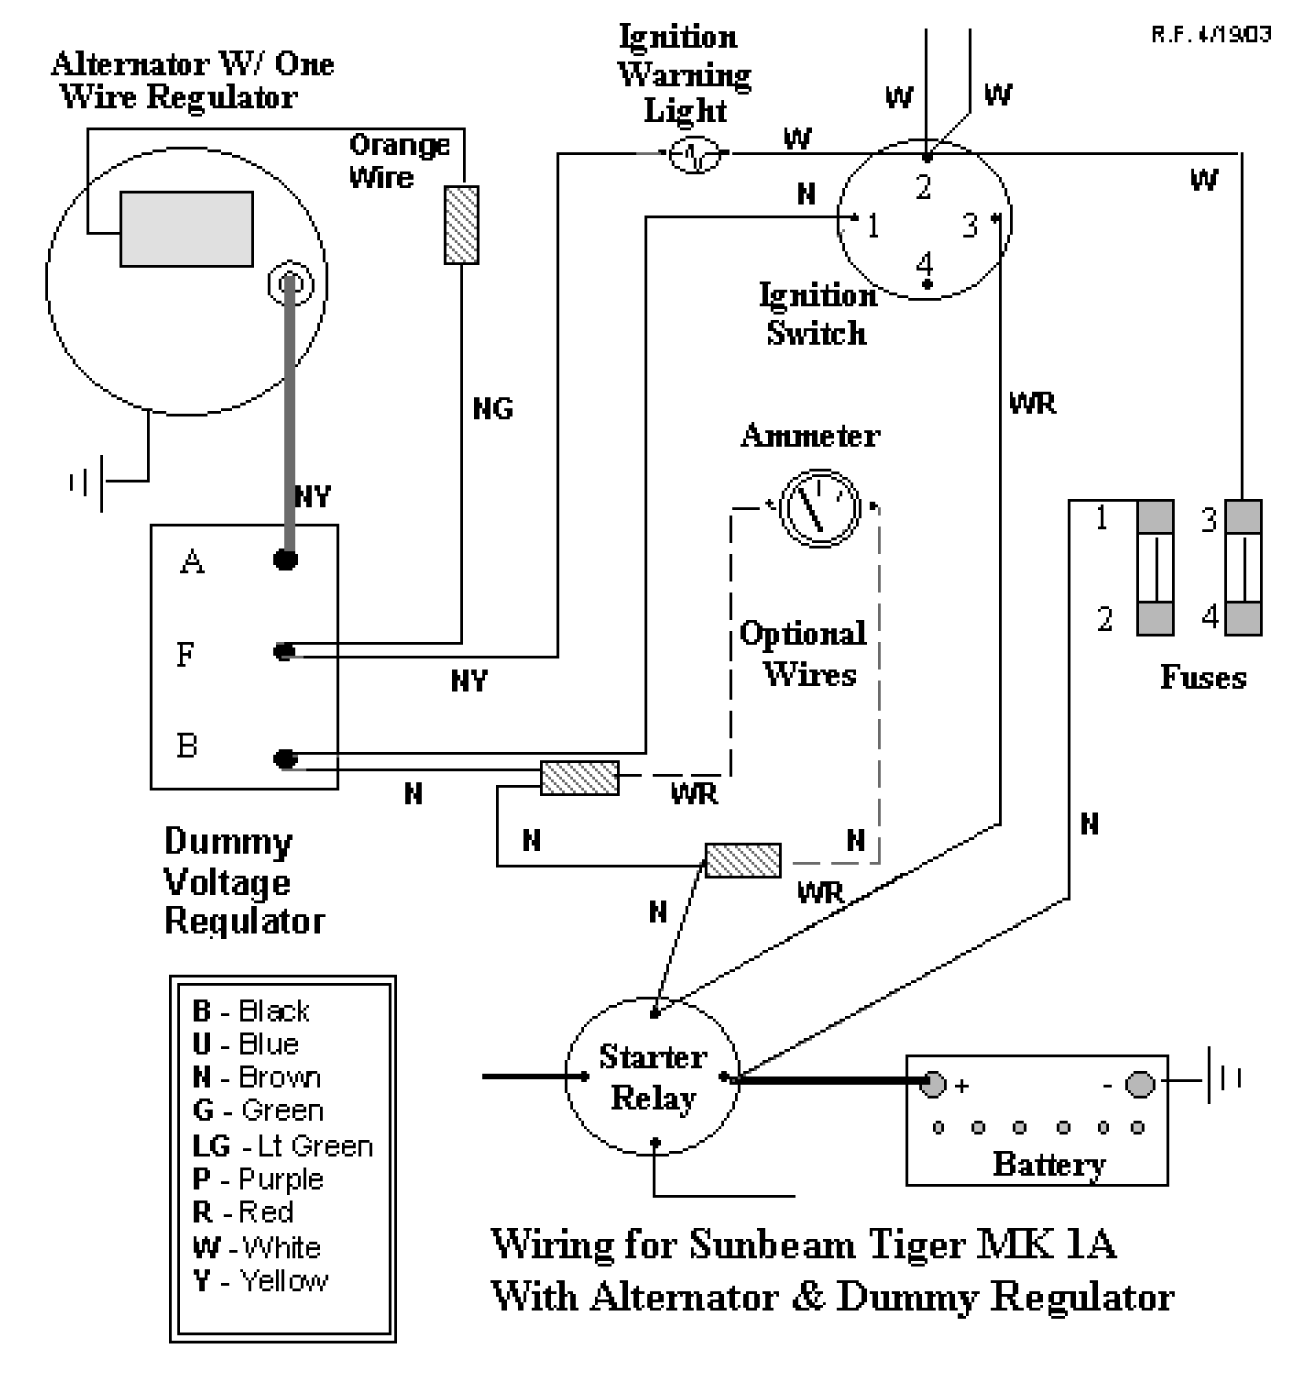 Ford Voltage Regulator Diagram - Wiring Diagrams List